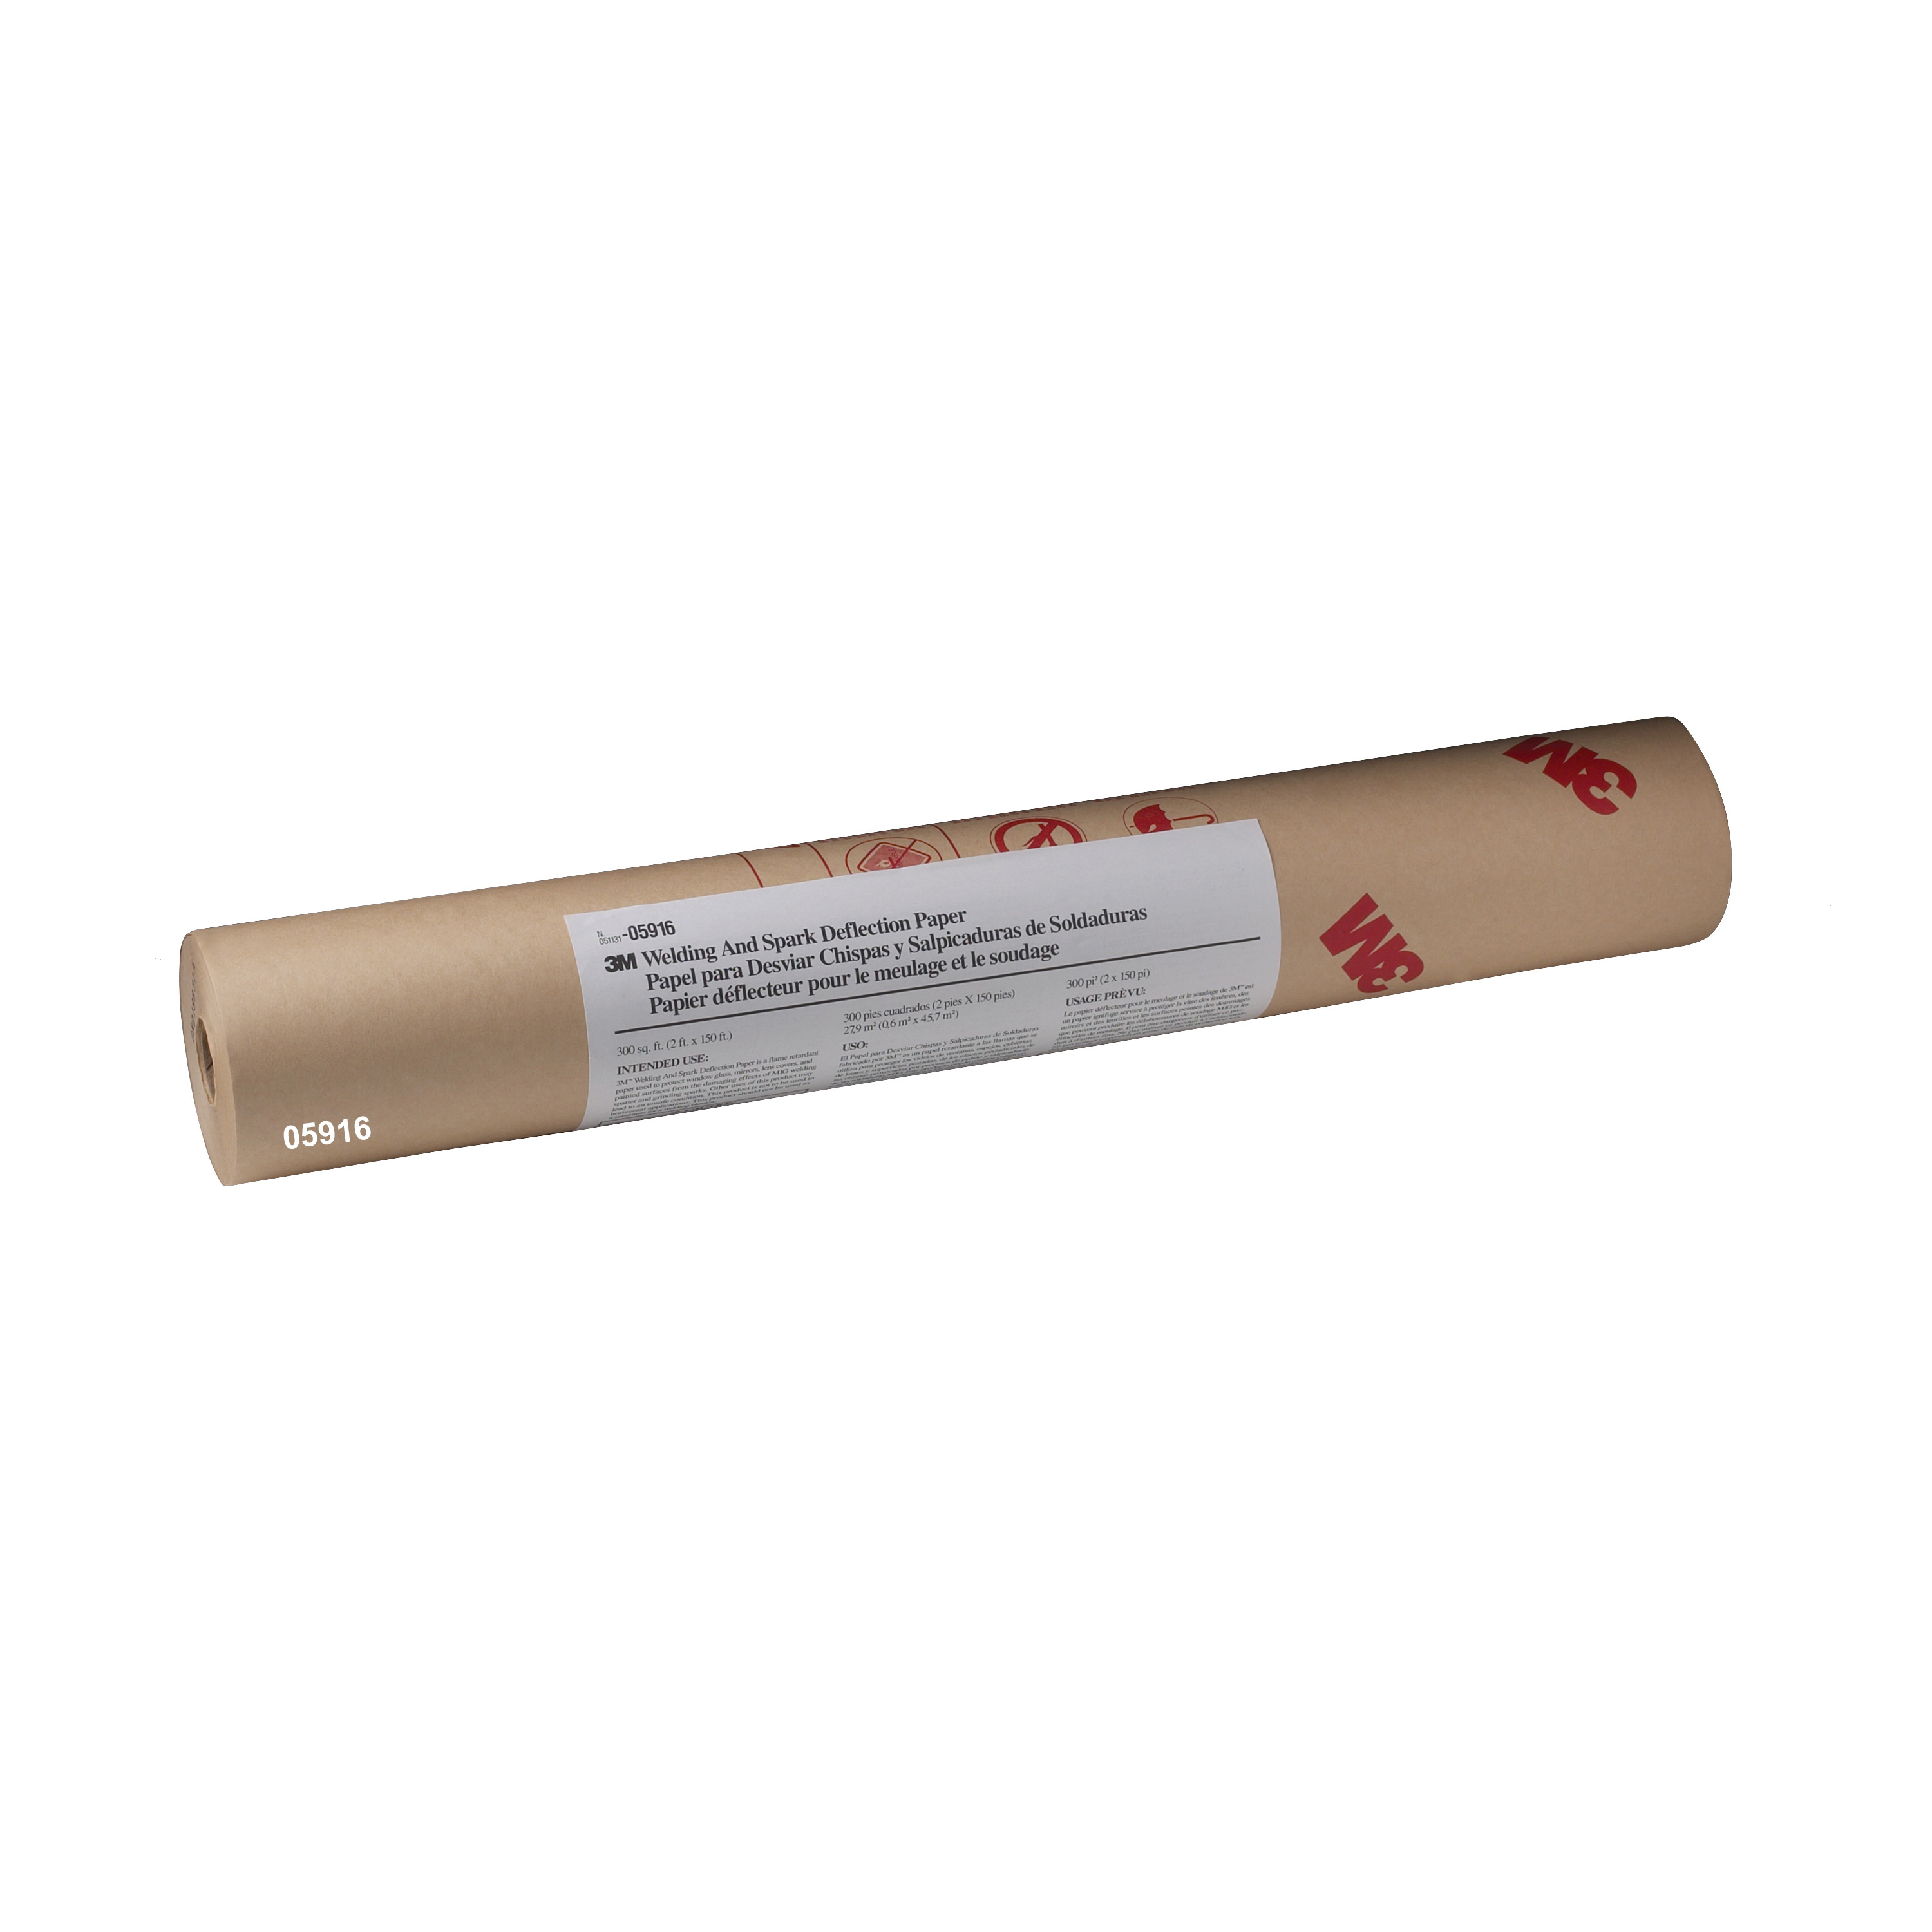 3M™ 051131-05916 Flame Retardant Repositionable Welding and Spark Deflection Paper, 150 ft Roll L x 24 in W, Masking Paper, Brown